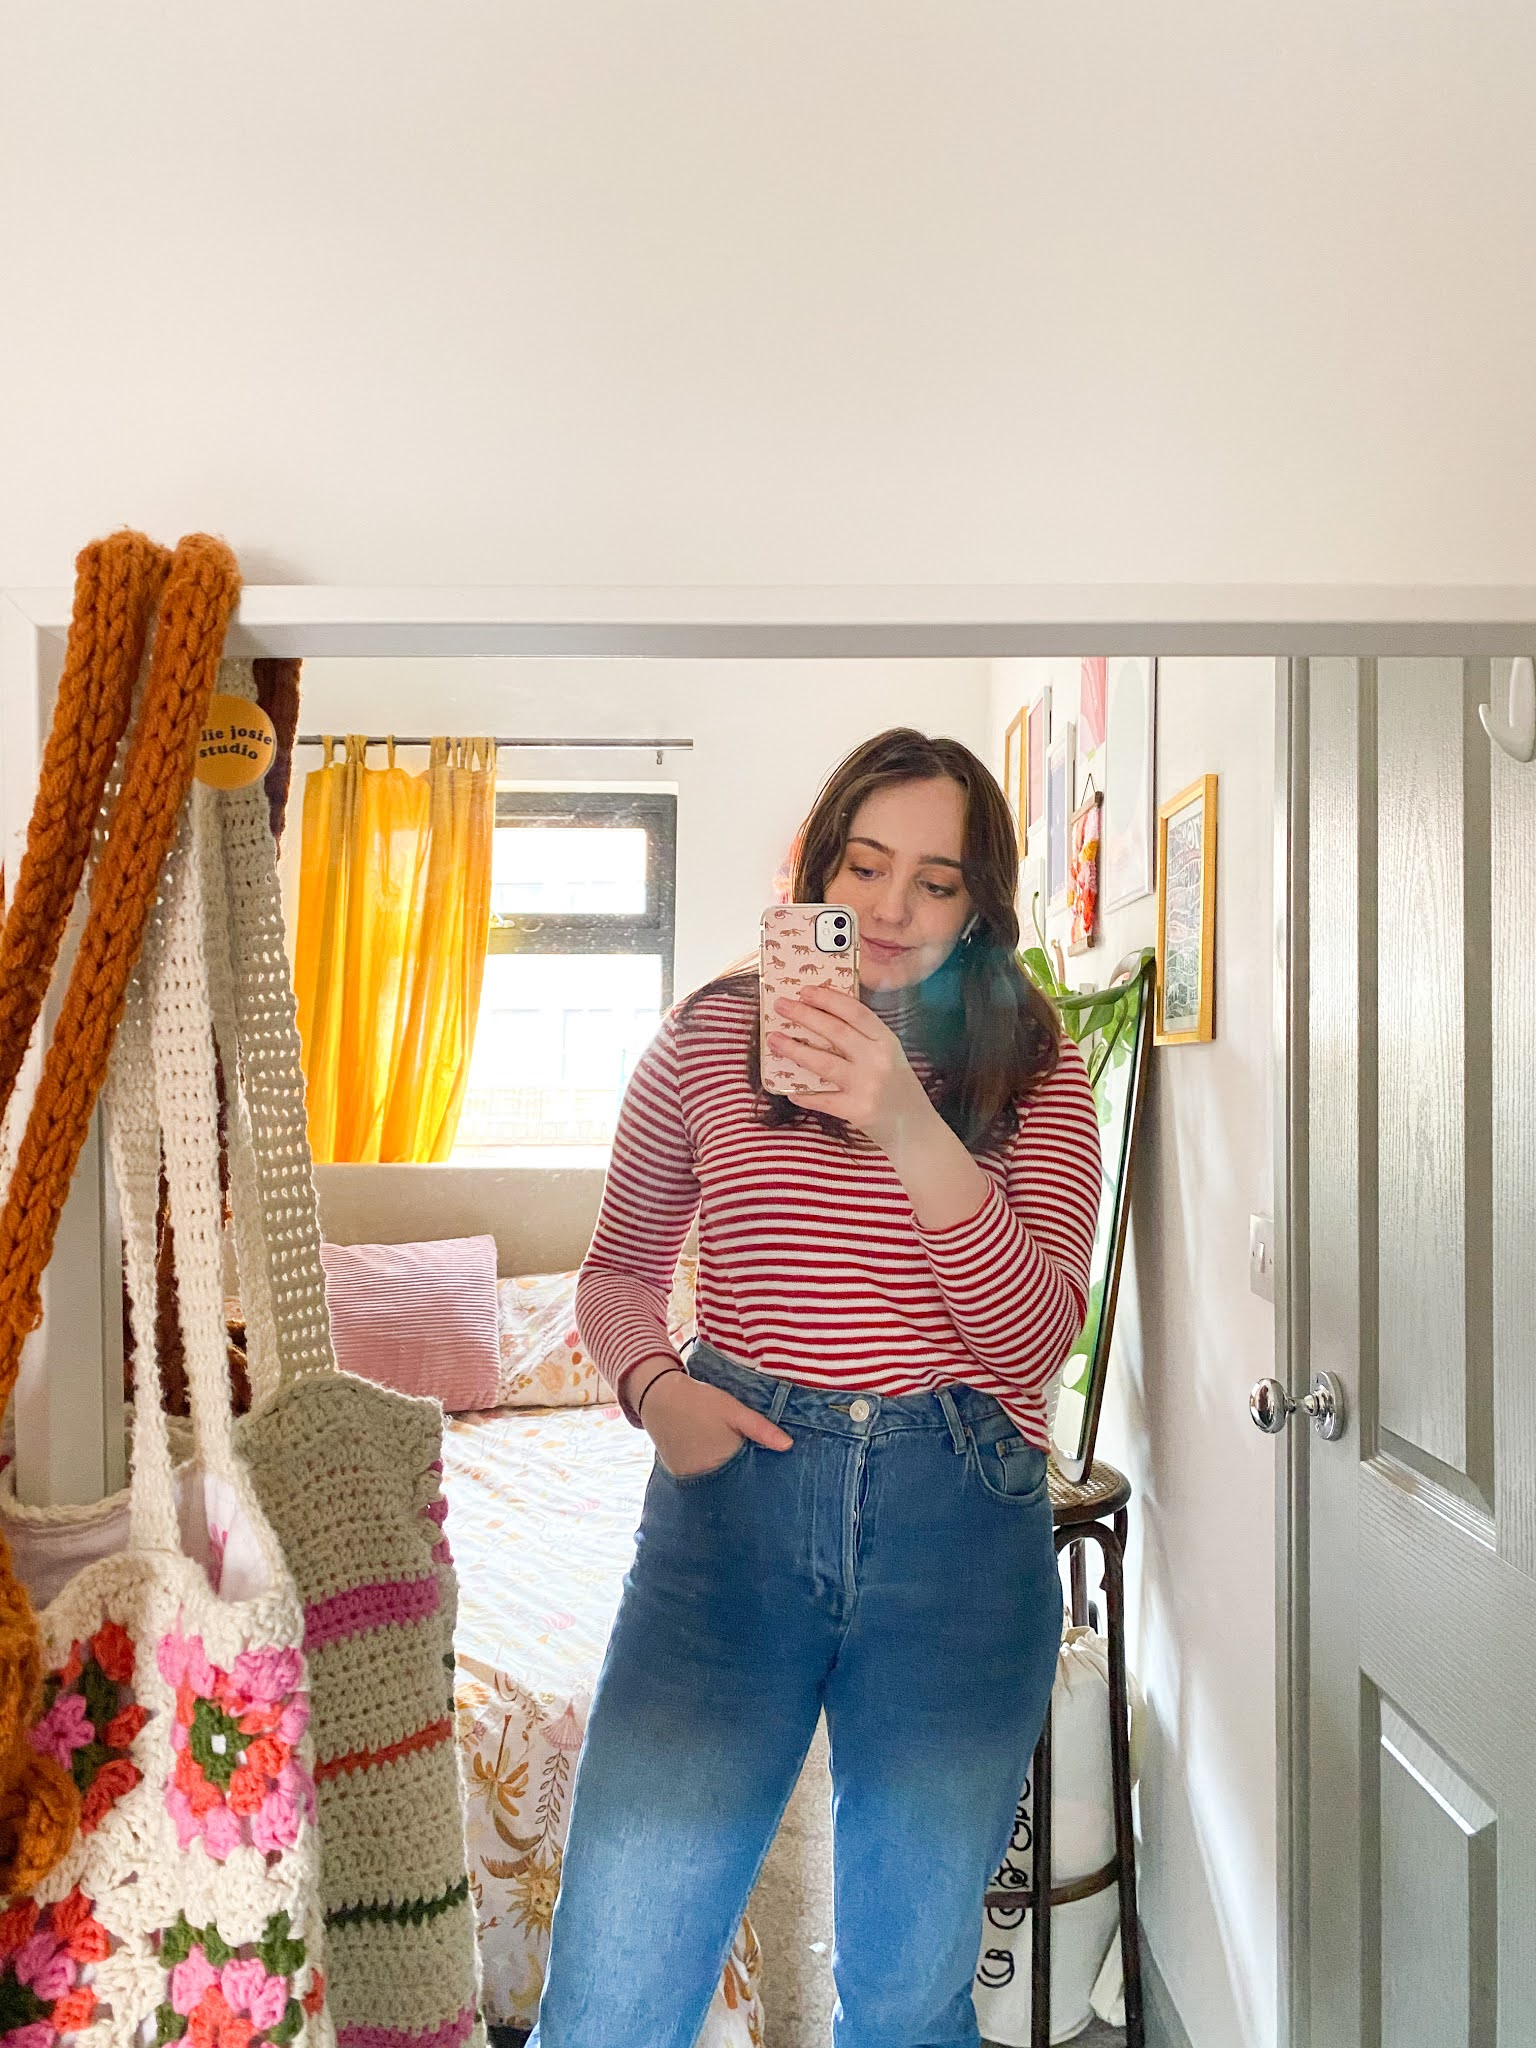 blogger poses for a mirror selfie in bedroom, with bed, plants, prints and curtains in background. Handmade crochet tote bags hang on the corner of the mirror